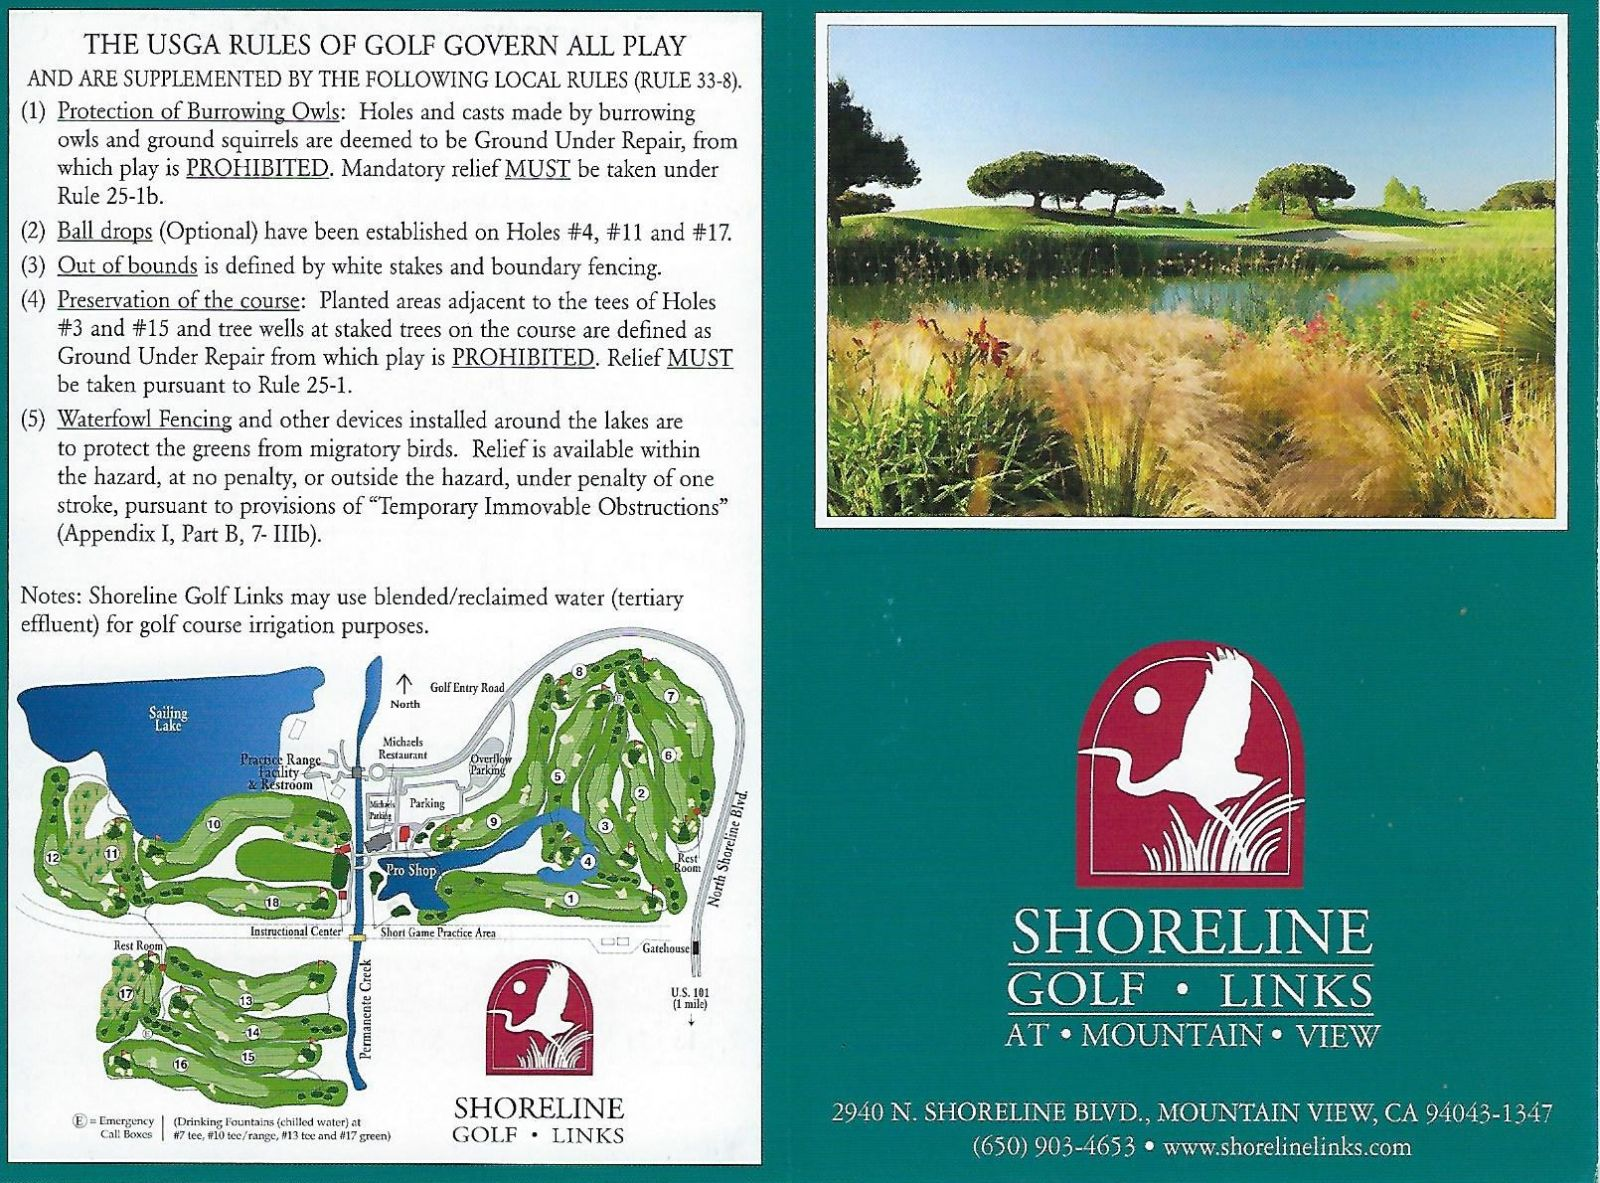 Shoreline Golf Links rules